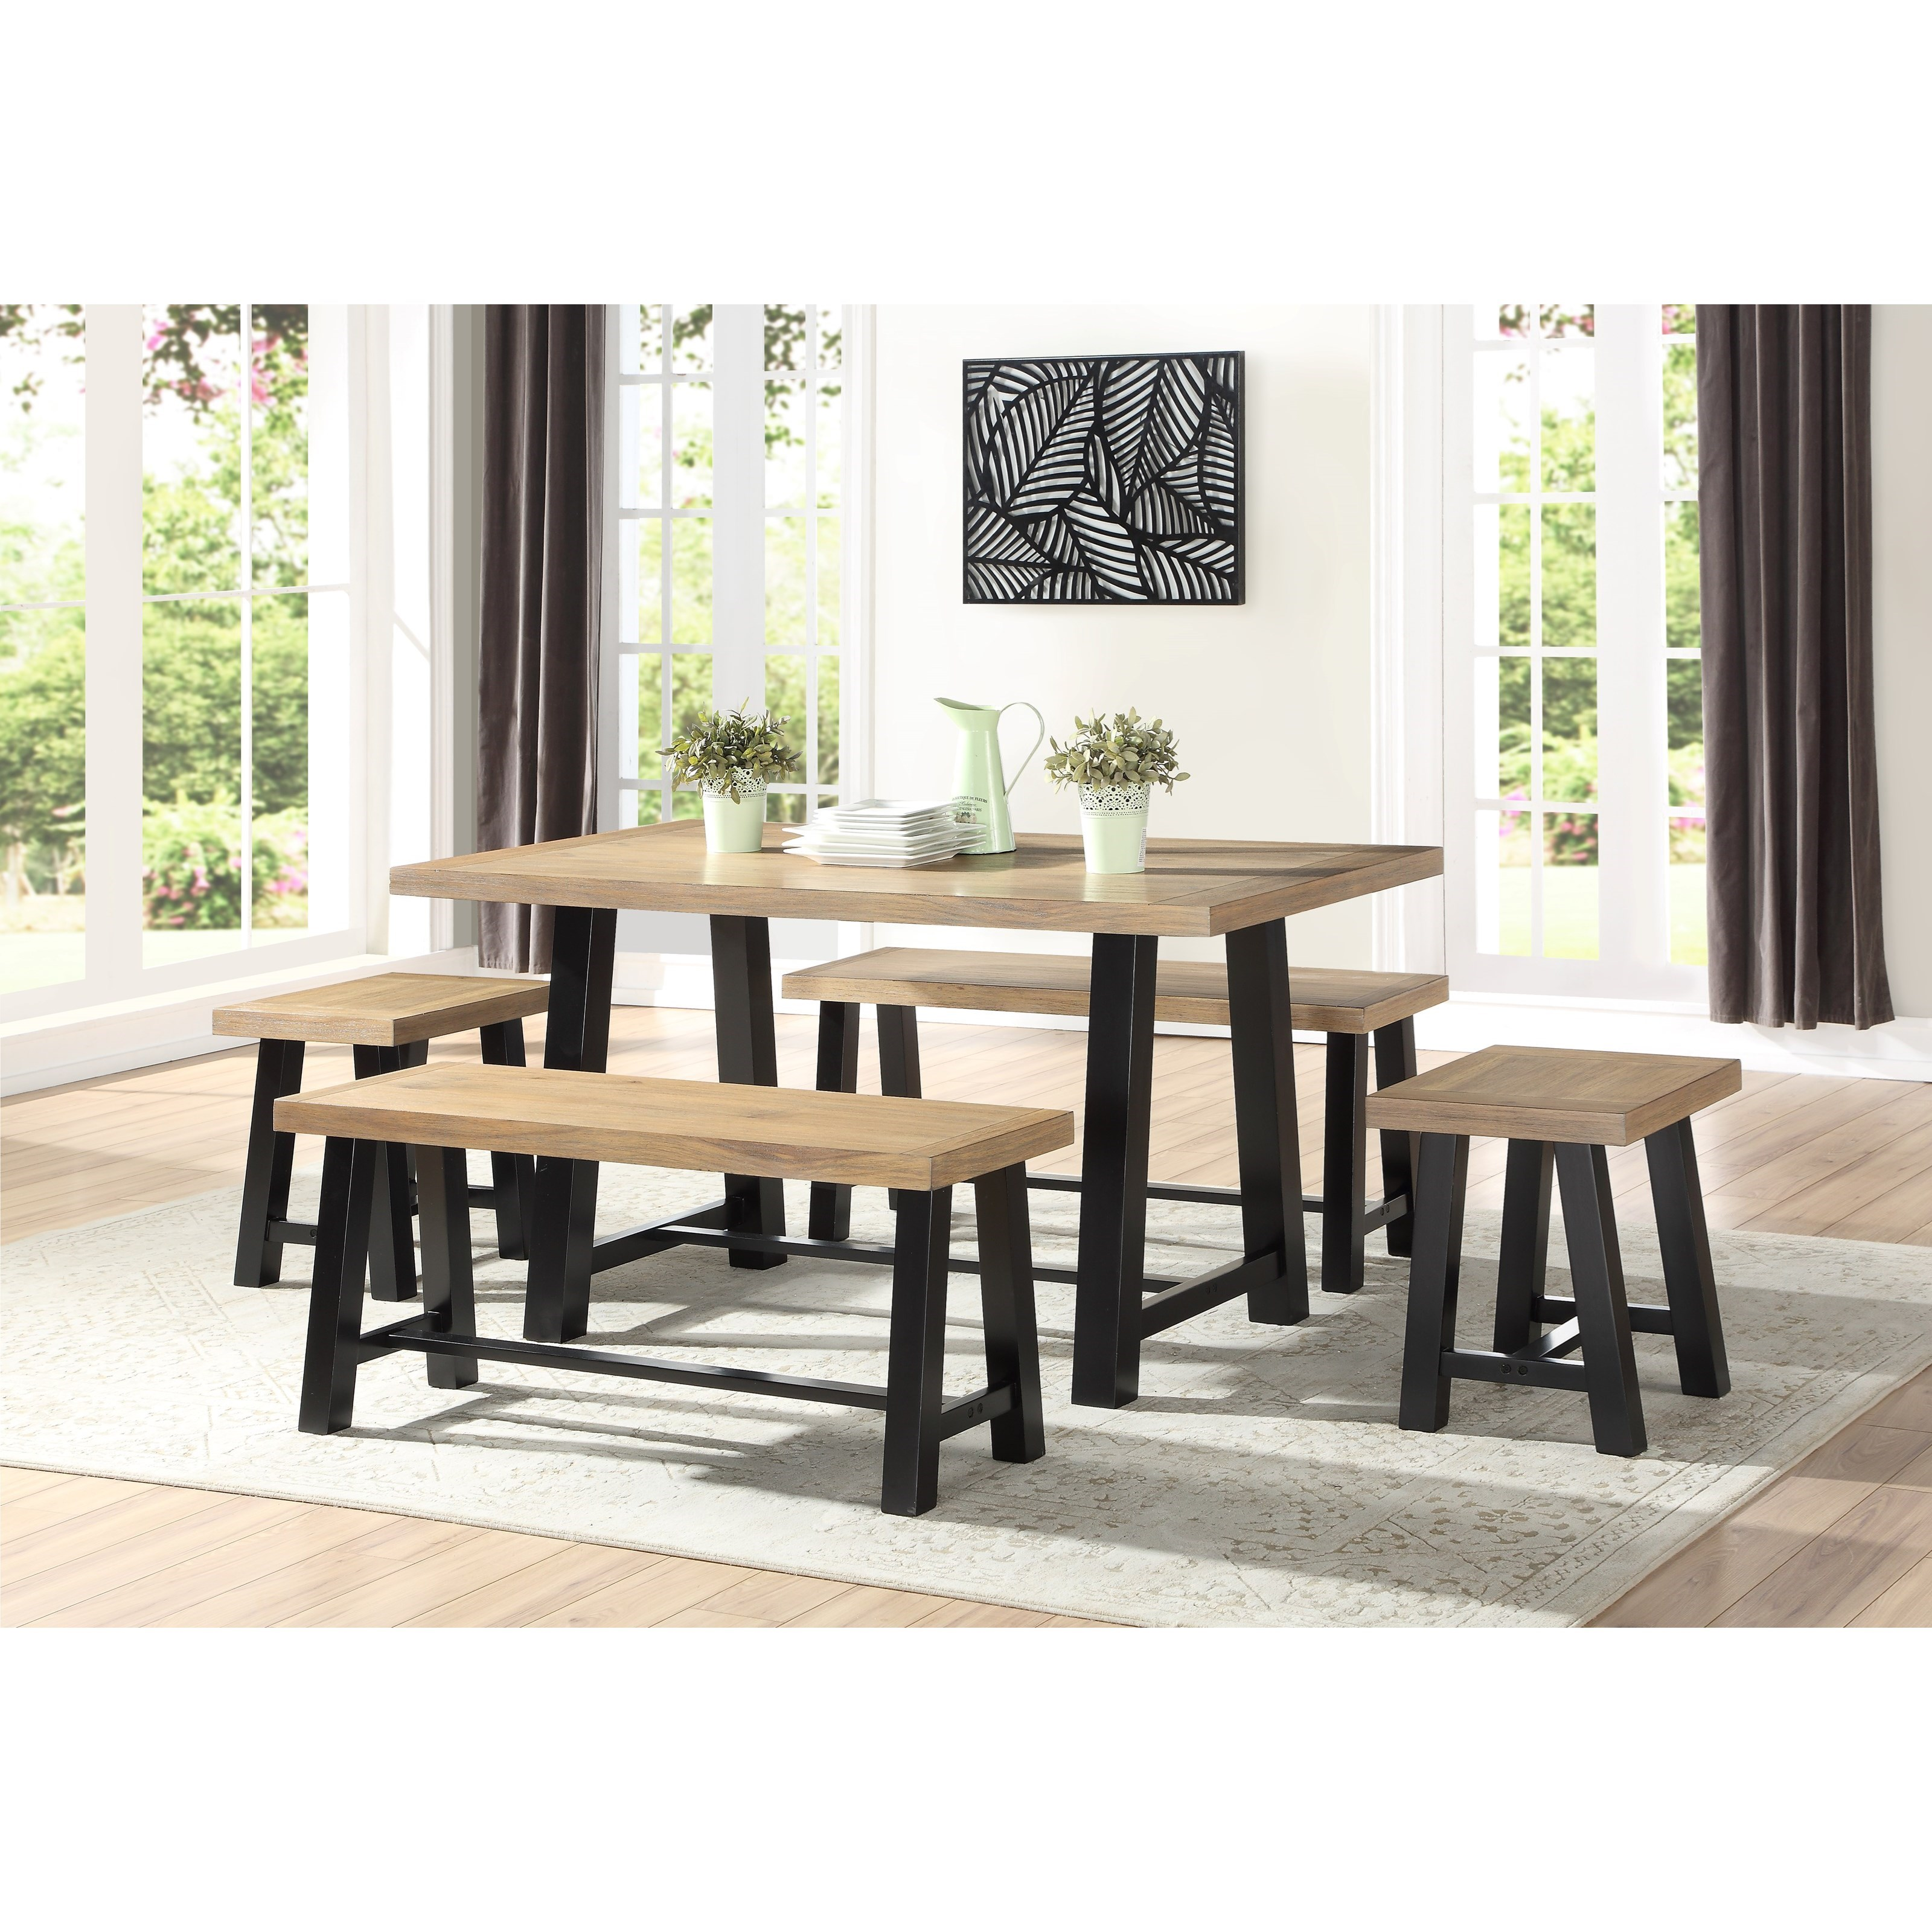 Table & Chair Set with 2 Benches